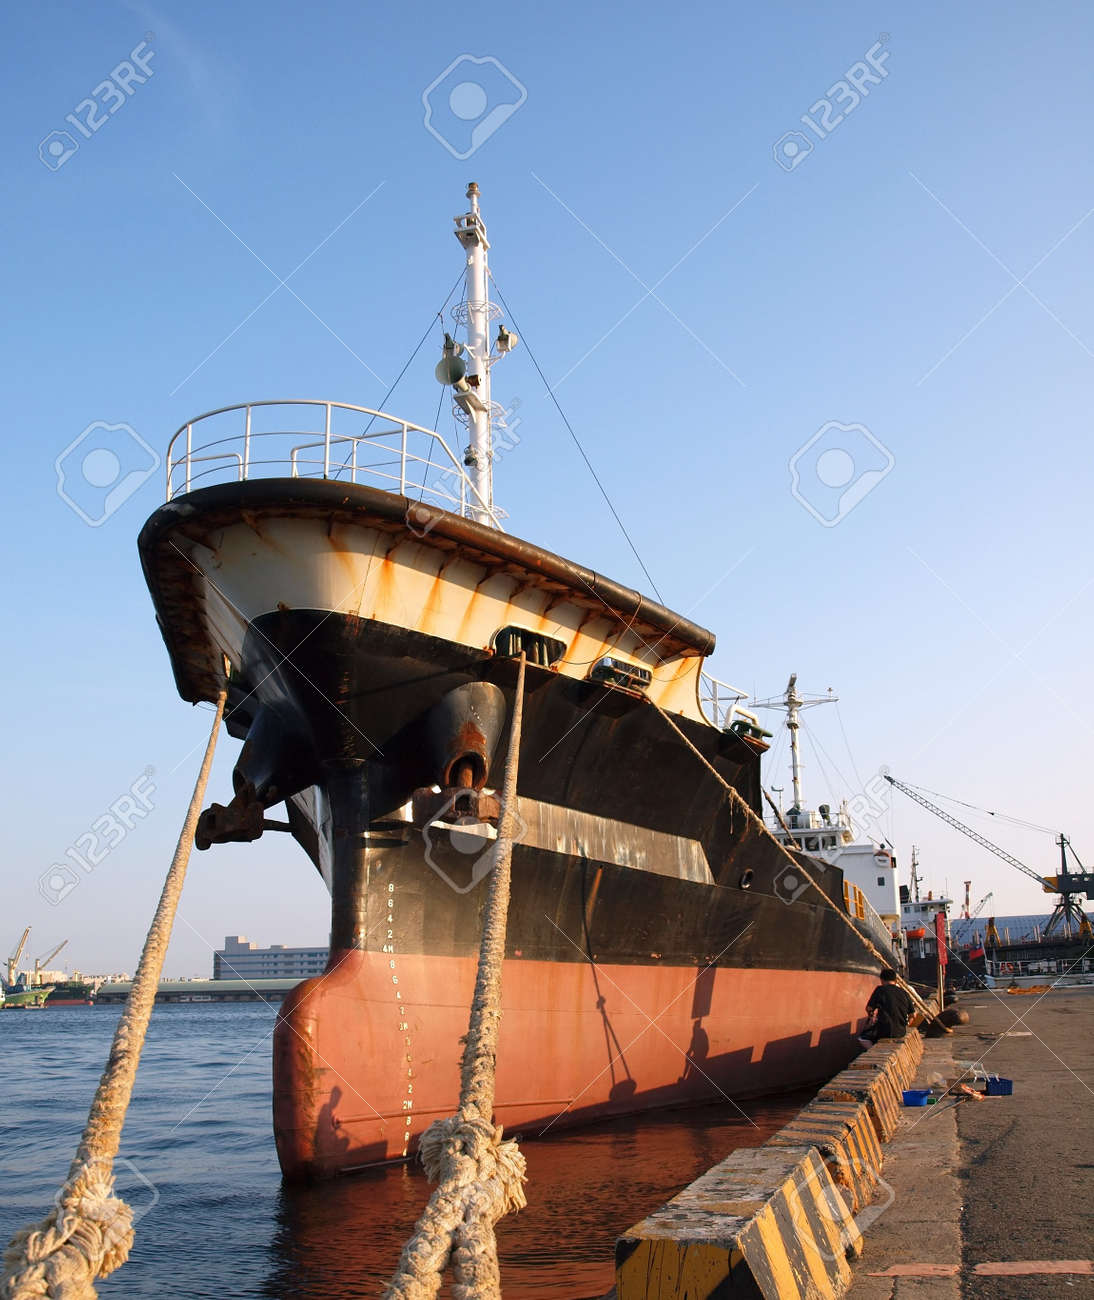 A Black Freight Ship Is Tied Up In Port Stock Photo, Picture And ...